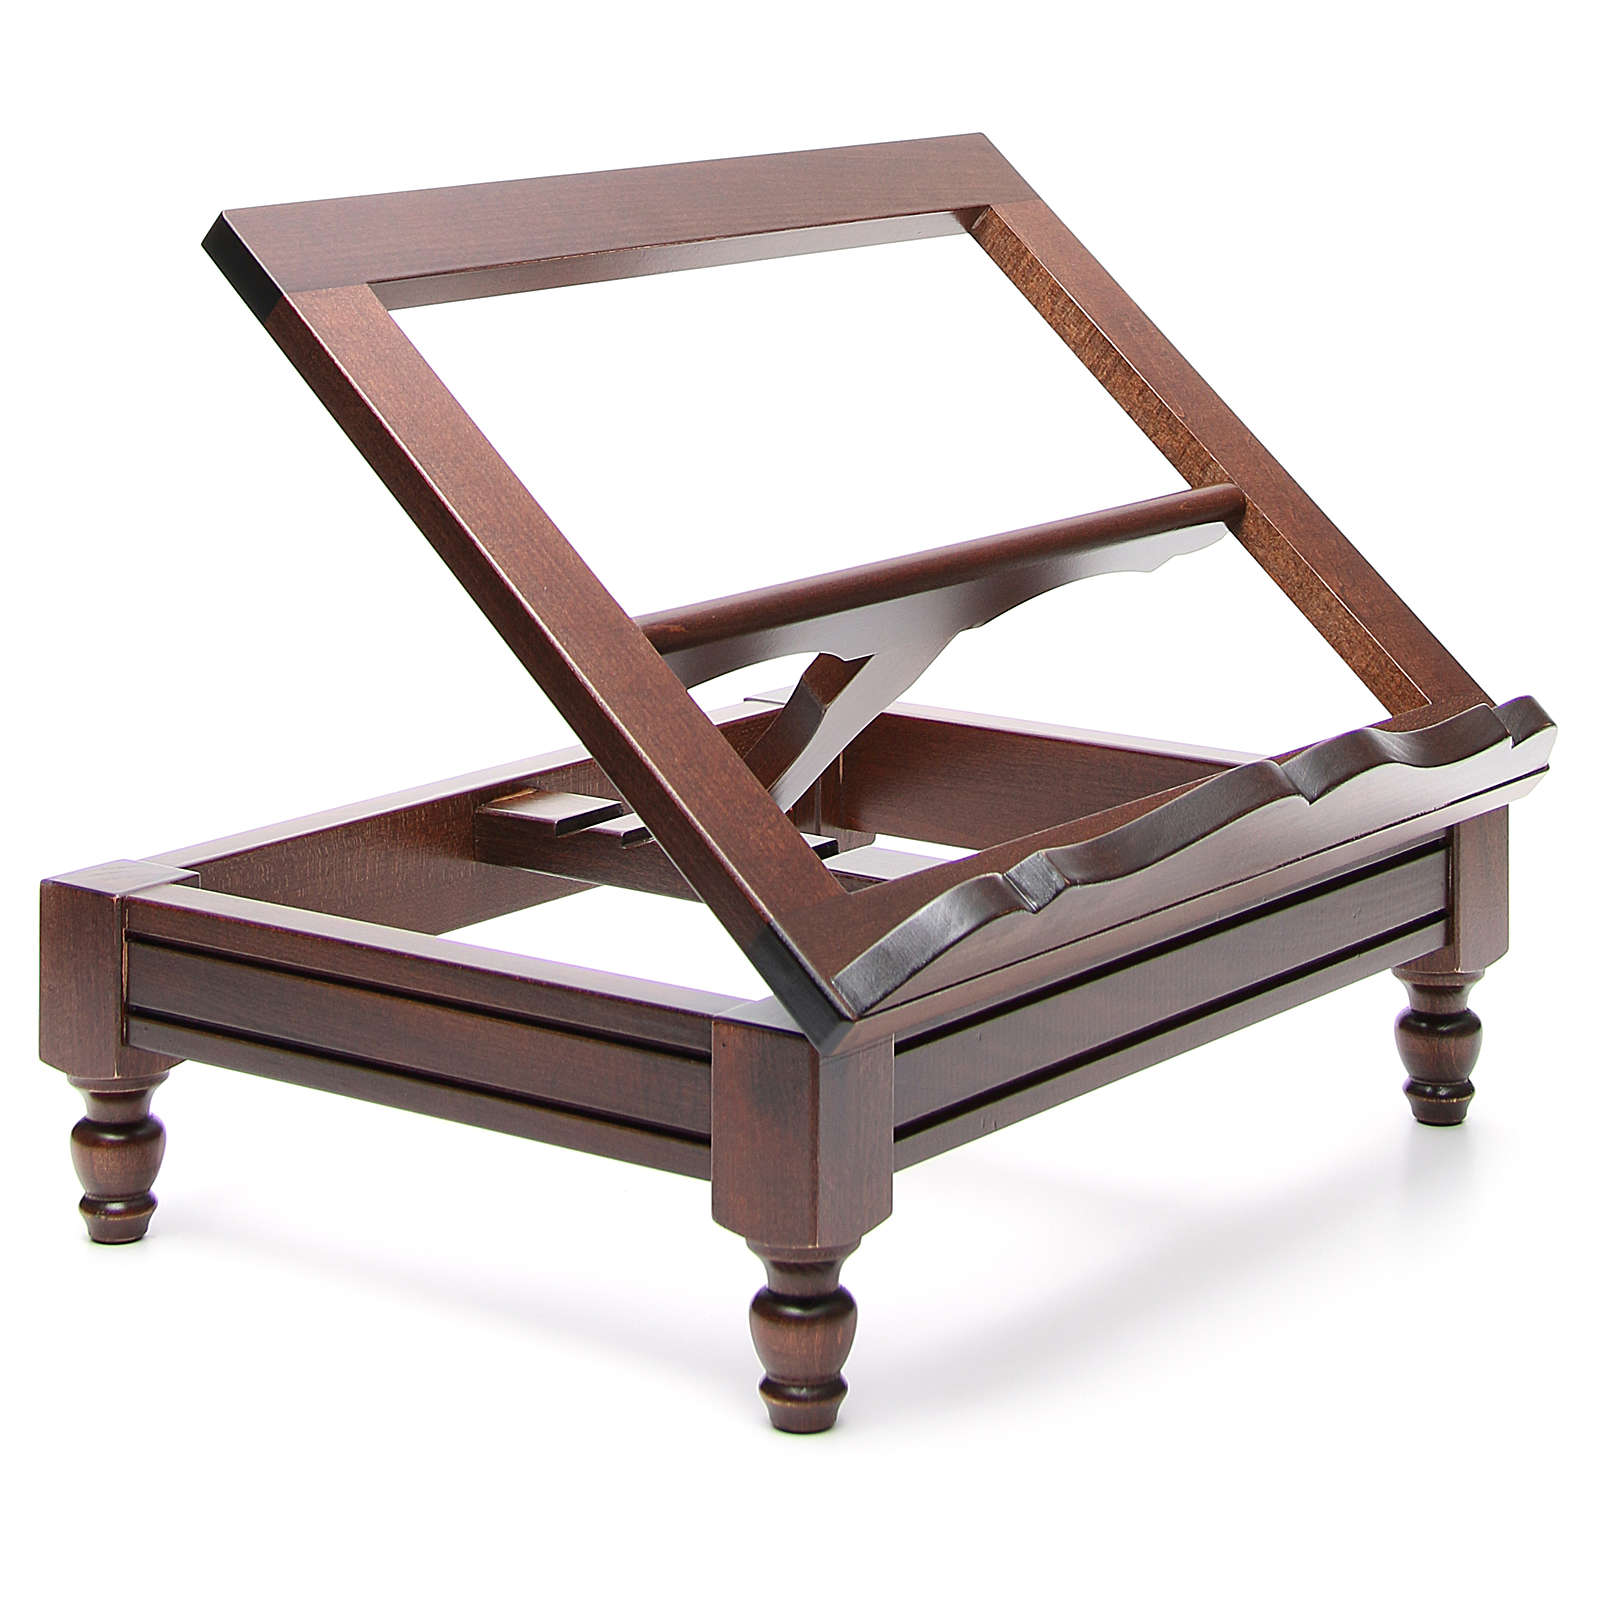 STOCK Book stand in dark wood 4